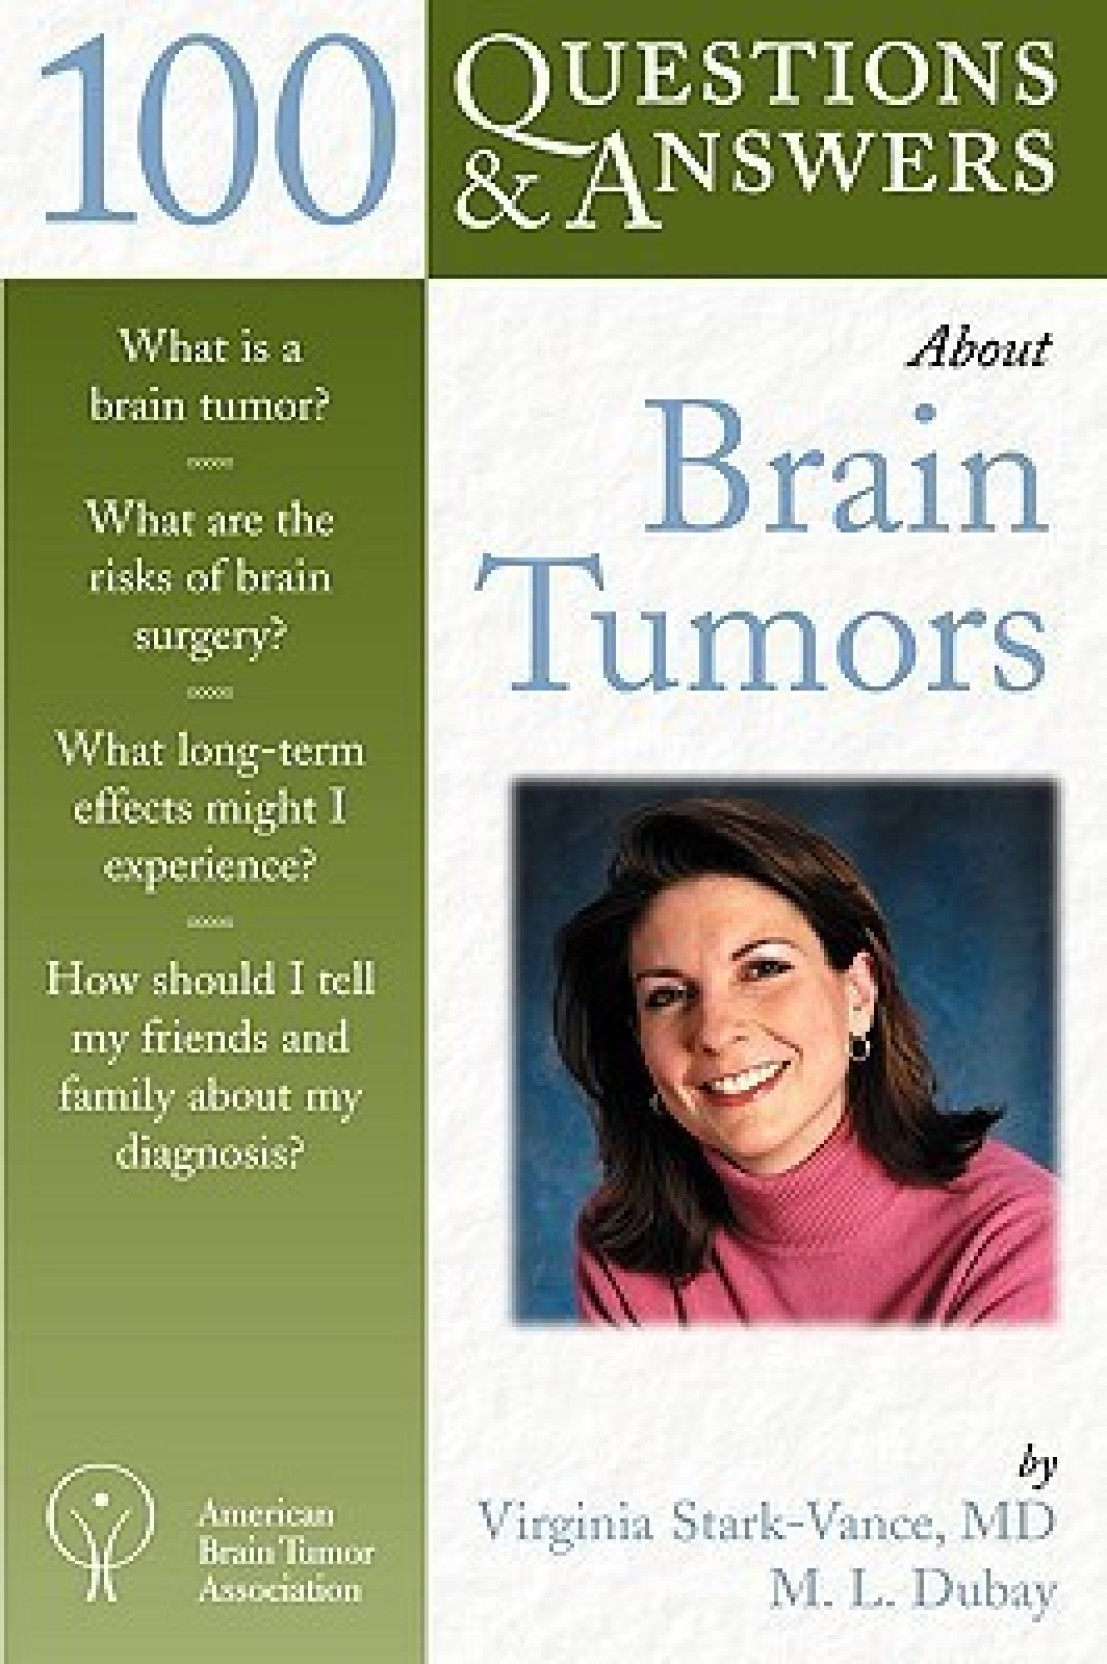 ... Brain Tumors (100 Questions & Answers) 1st Edition. ADD TO CART